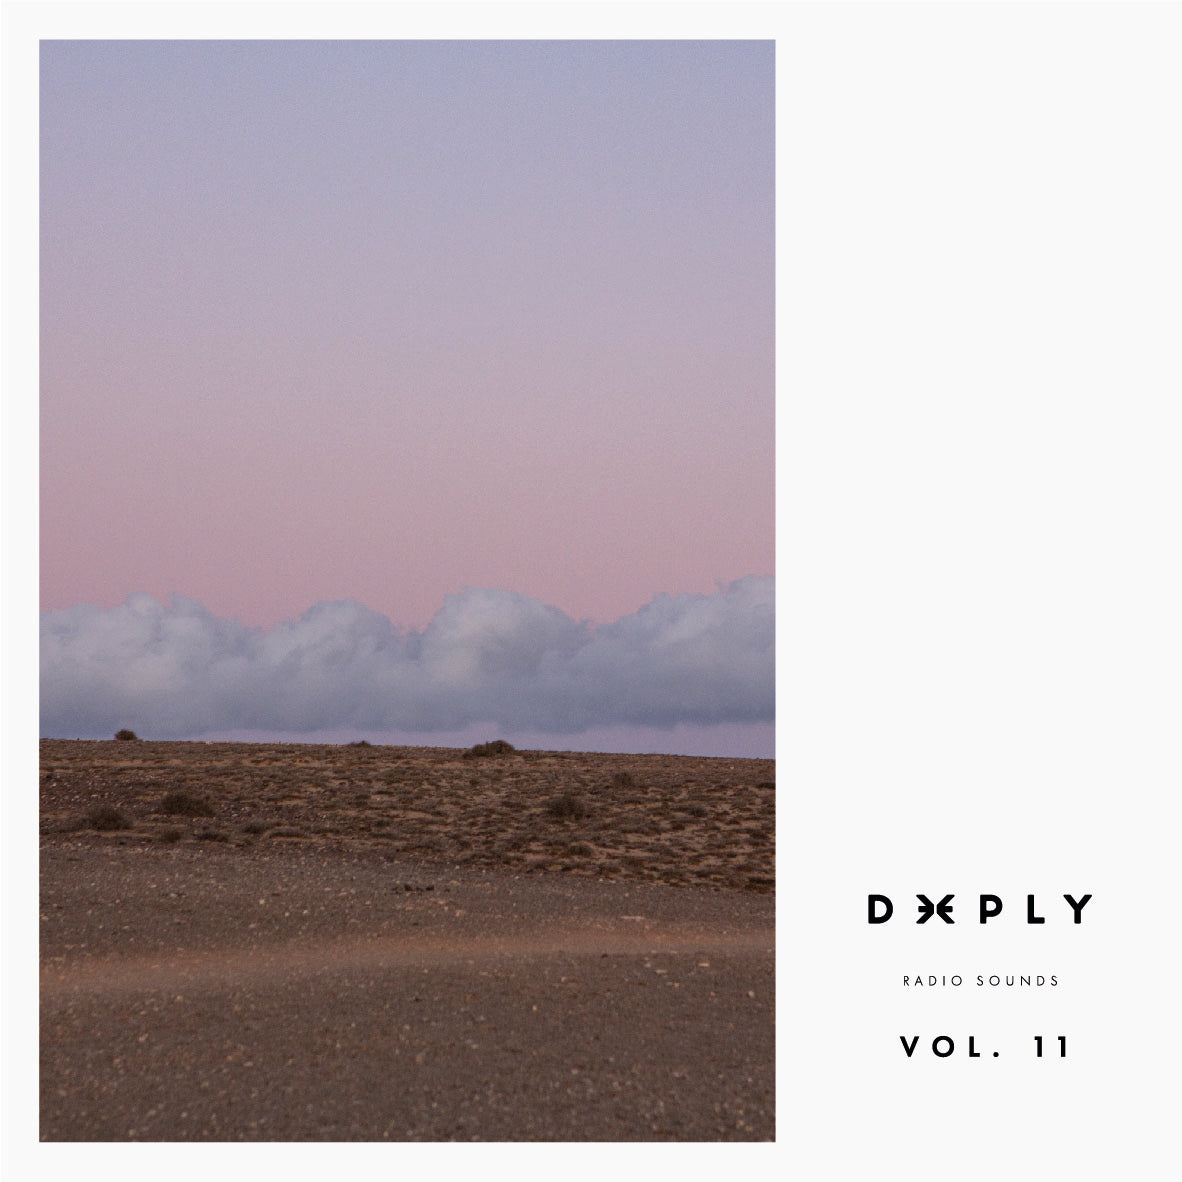 Deeply Radio Sounds Vol.11